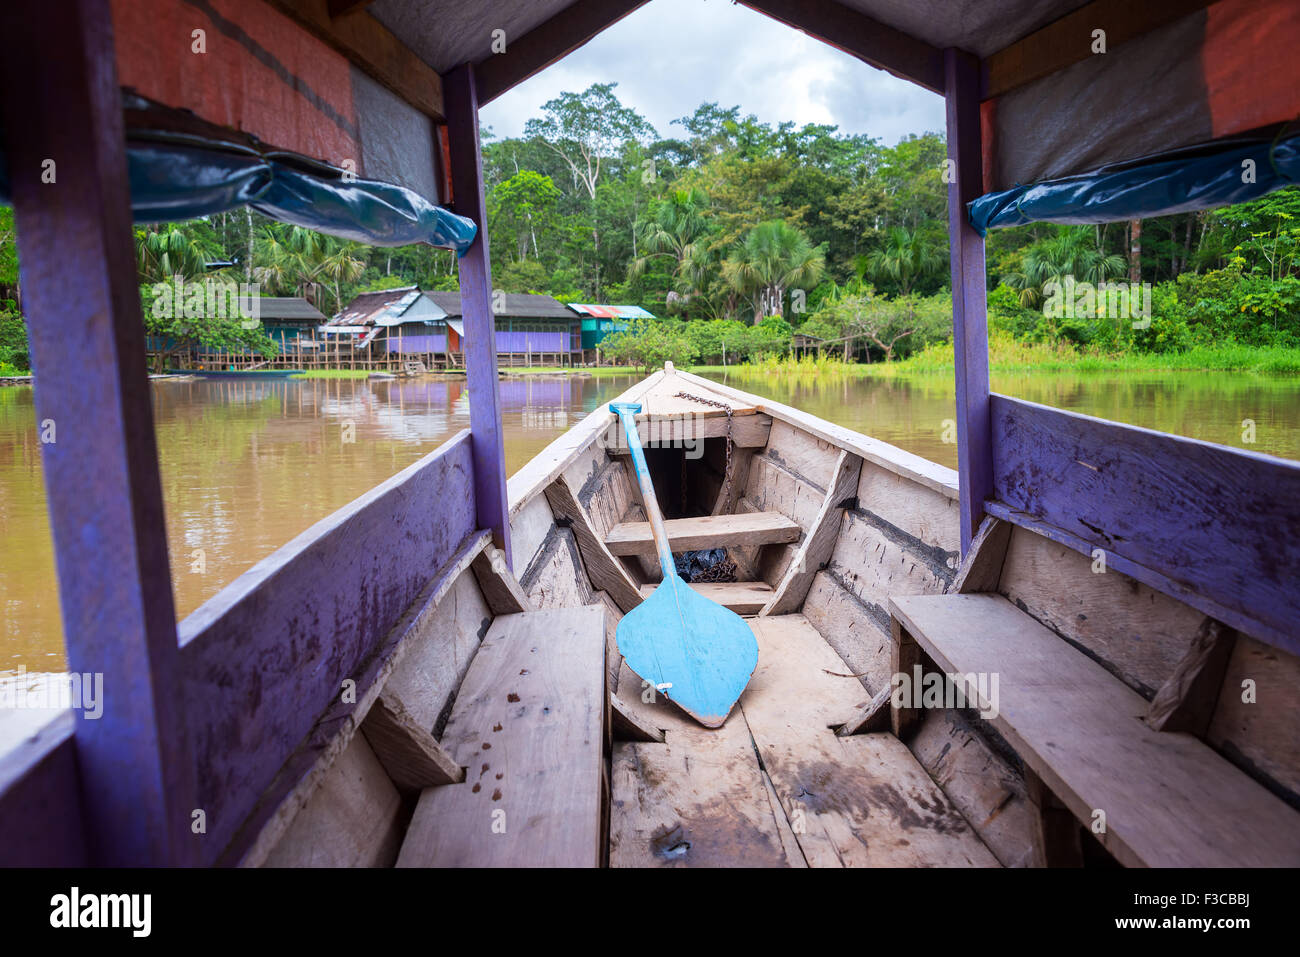 Purple canoe arriving at an island in the Amazon River near Iquitos, Peru - Stock Image